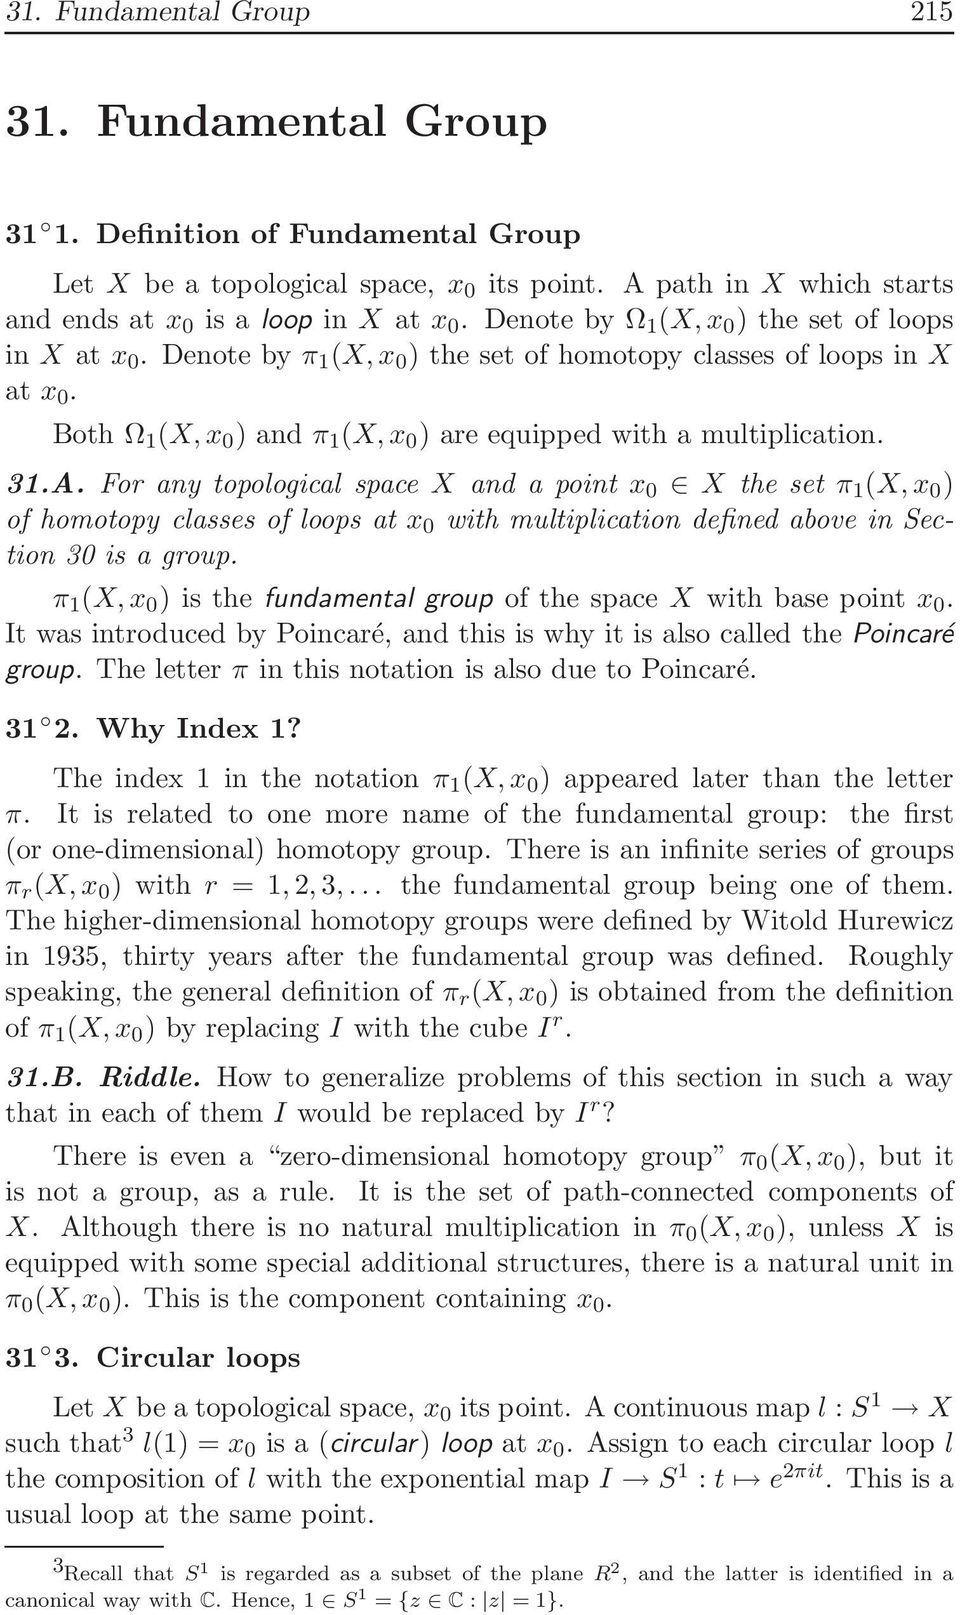 A. For any topological space X and a point x 0 X the set π 1 (X,x 0 ) of homotopy classes of loops at x 0 with multiplication defined above in Section 30 is a group.